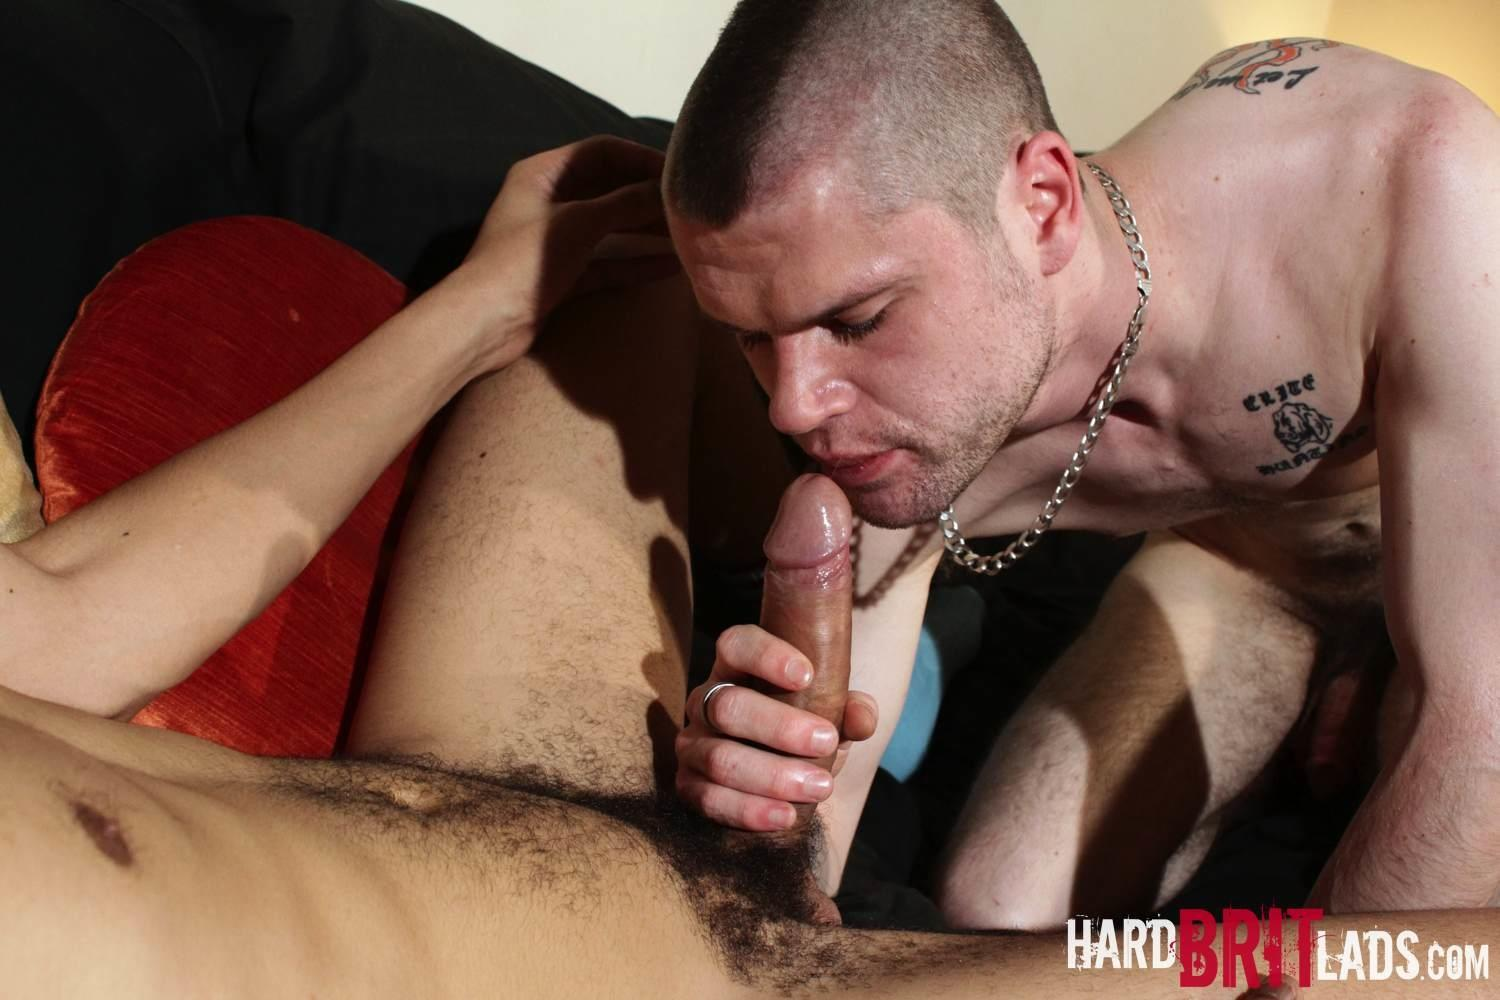 Bisexual Couple Enjoys Another Mans Rock Hard Cock To Suck.